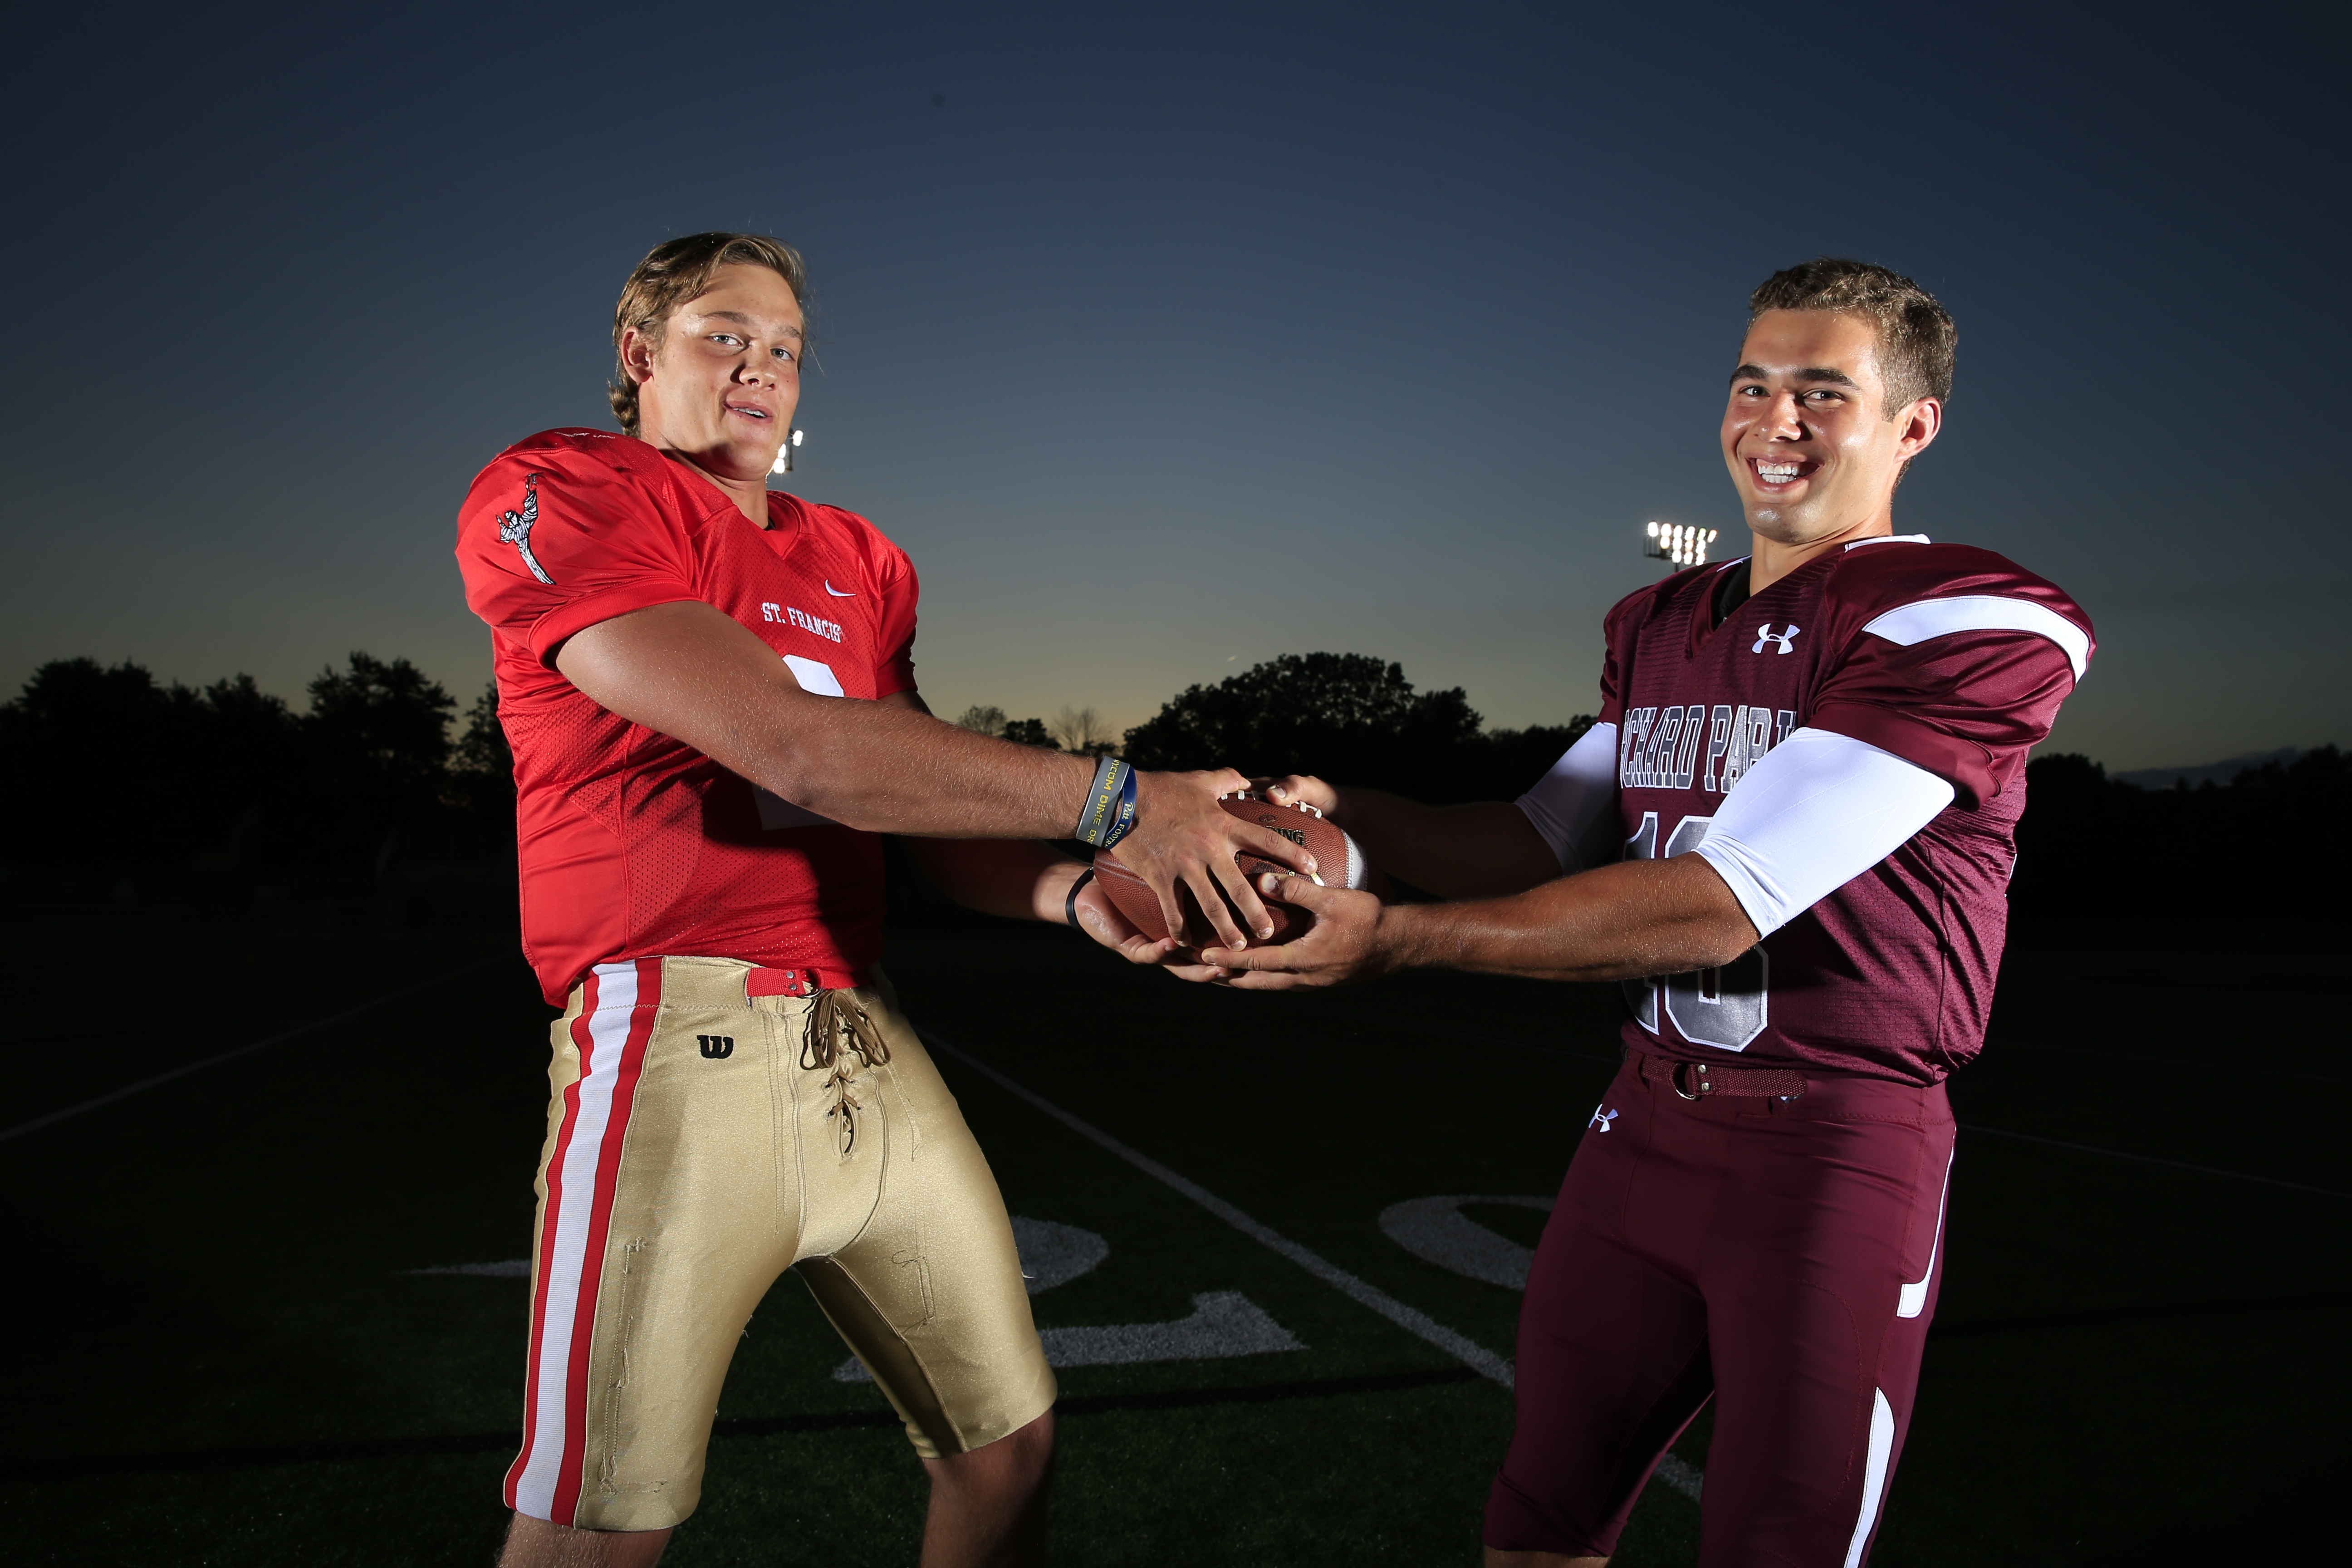 They could have turned into fierce and bitter rivals once they matched their athletic talents in the swimming pool back when they were 5 years old. Instead, St. Francis quarterback Jerry Hickson and Orchard Park quarterback Dillon Janca developed a strong bond that persists as both try to lead their schools to postseason glory while carving out a place of prominence in the Western New York record book. (Harry Scull Jr./Buffalo News)